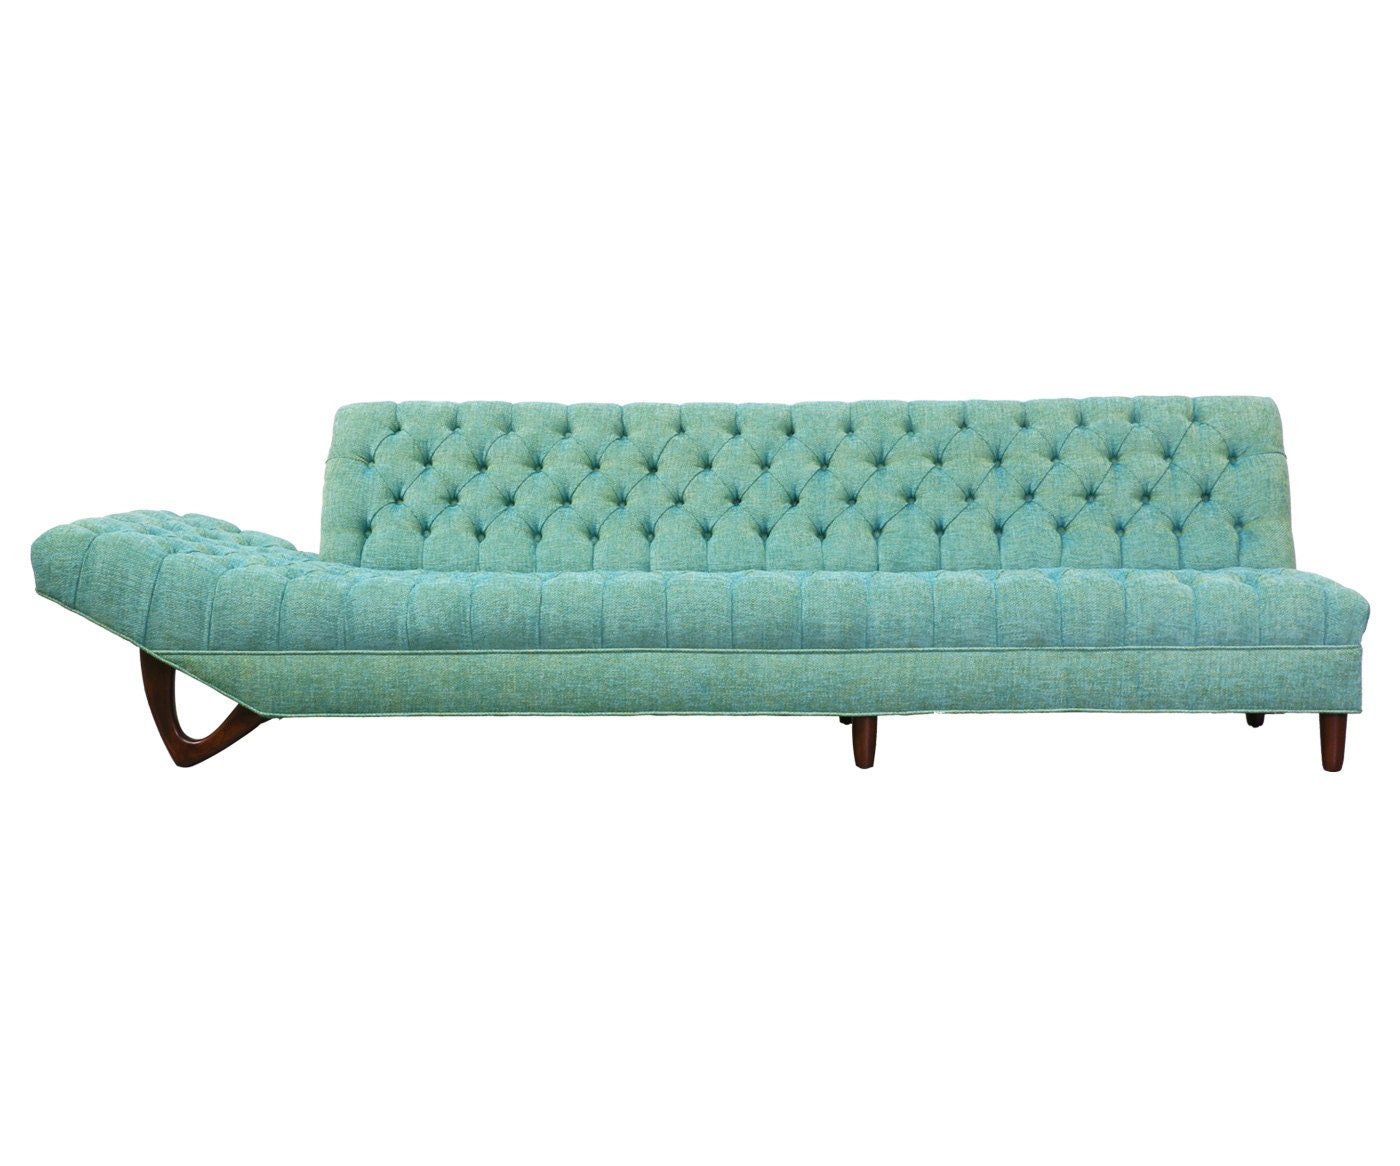 Norsborg sofa and chaise dimensions crafts for Chaise dimensions